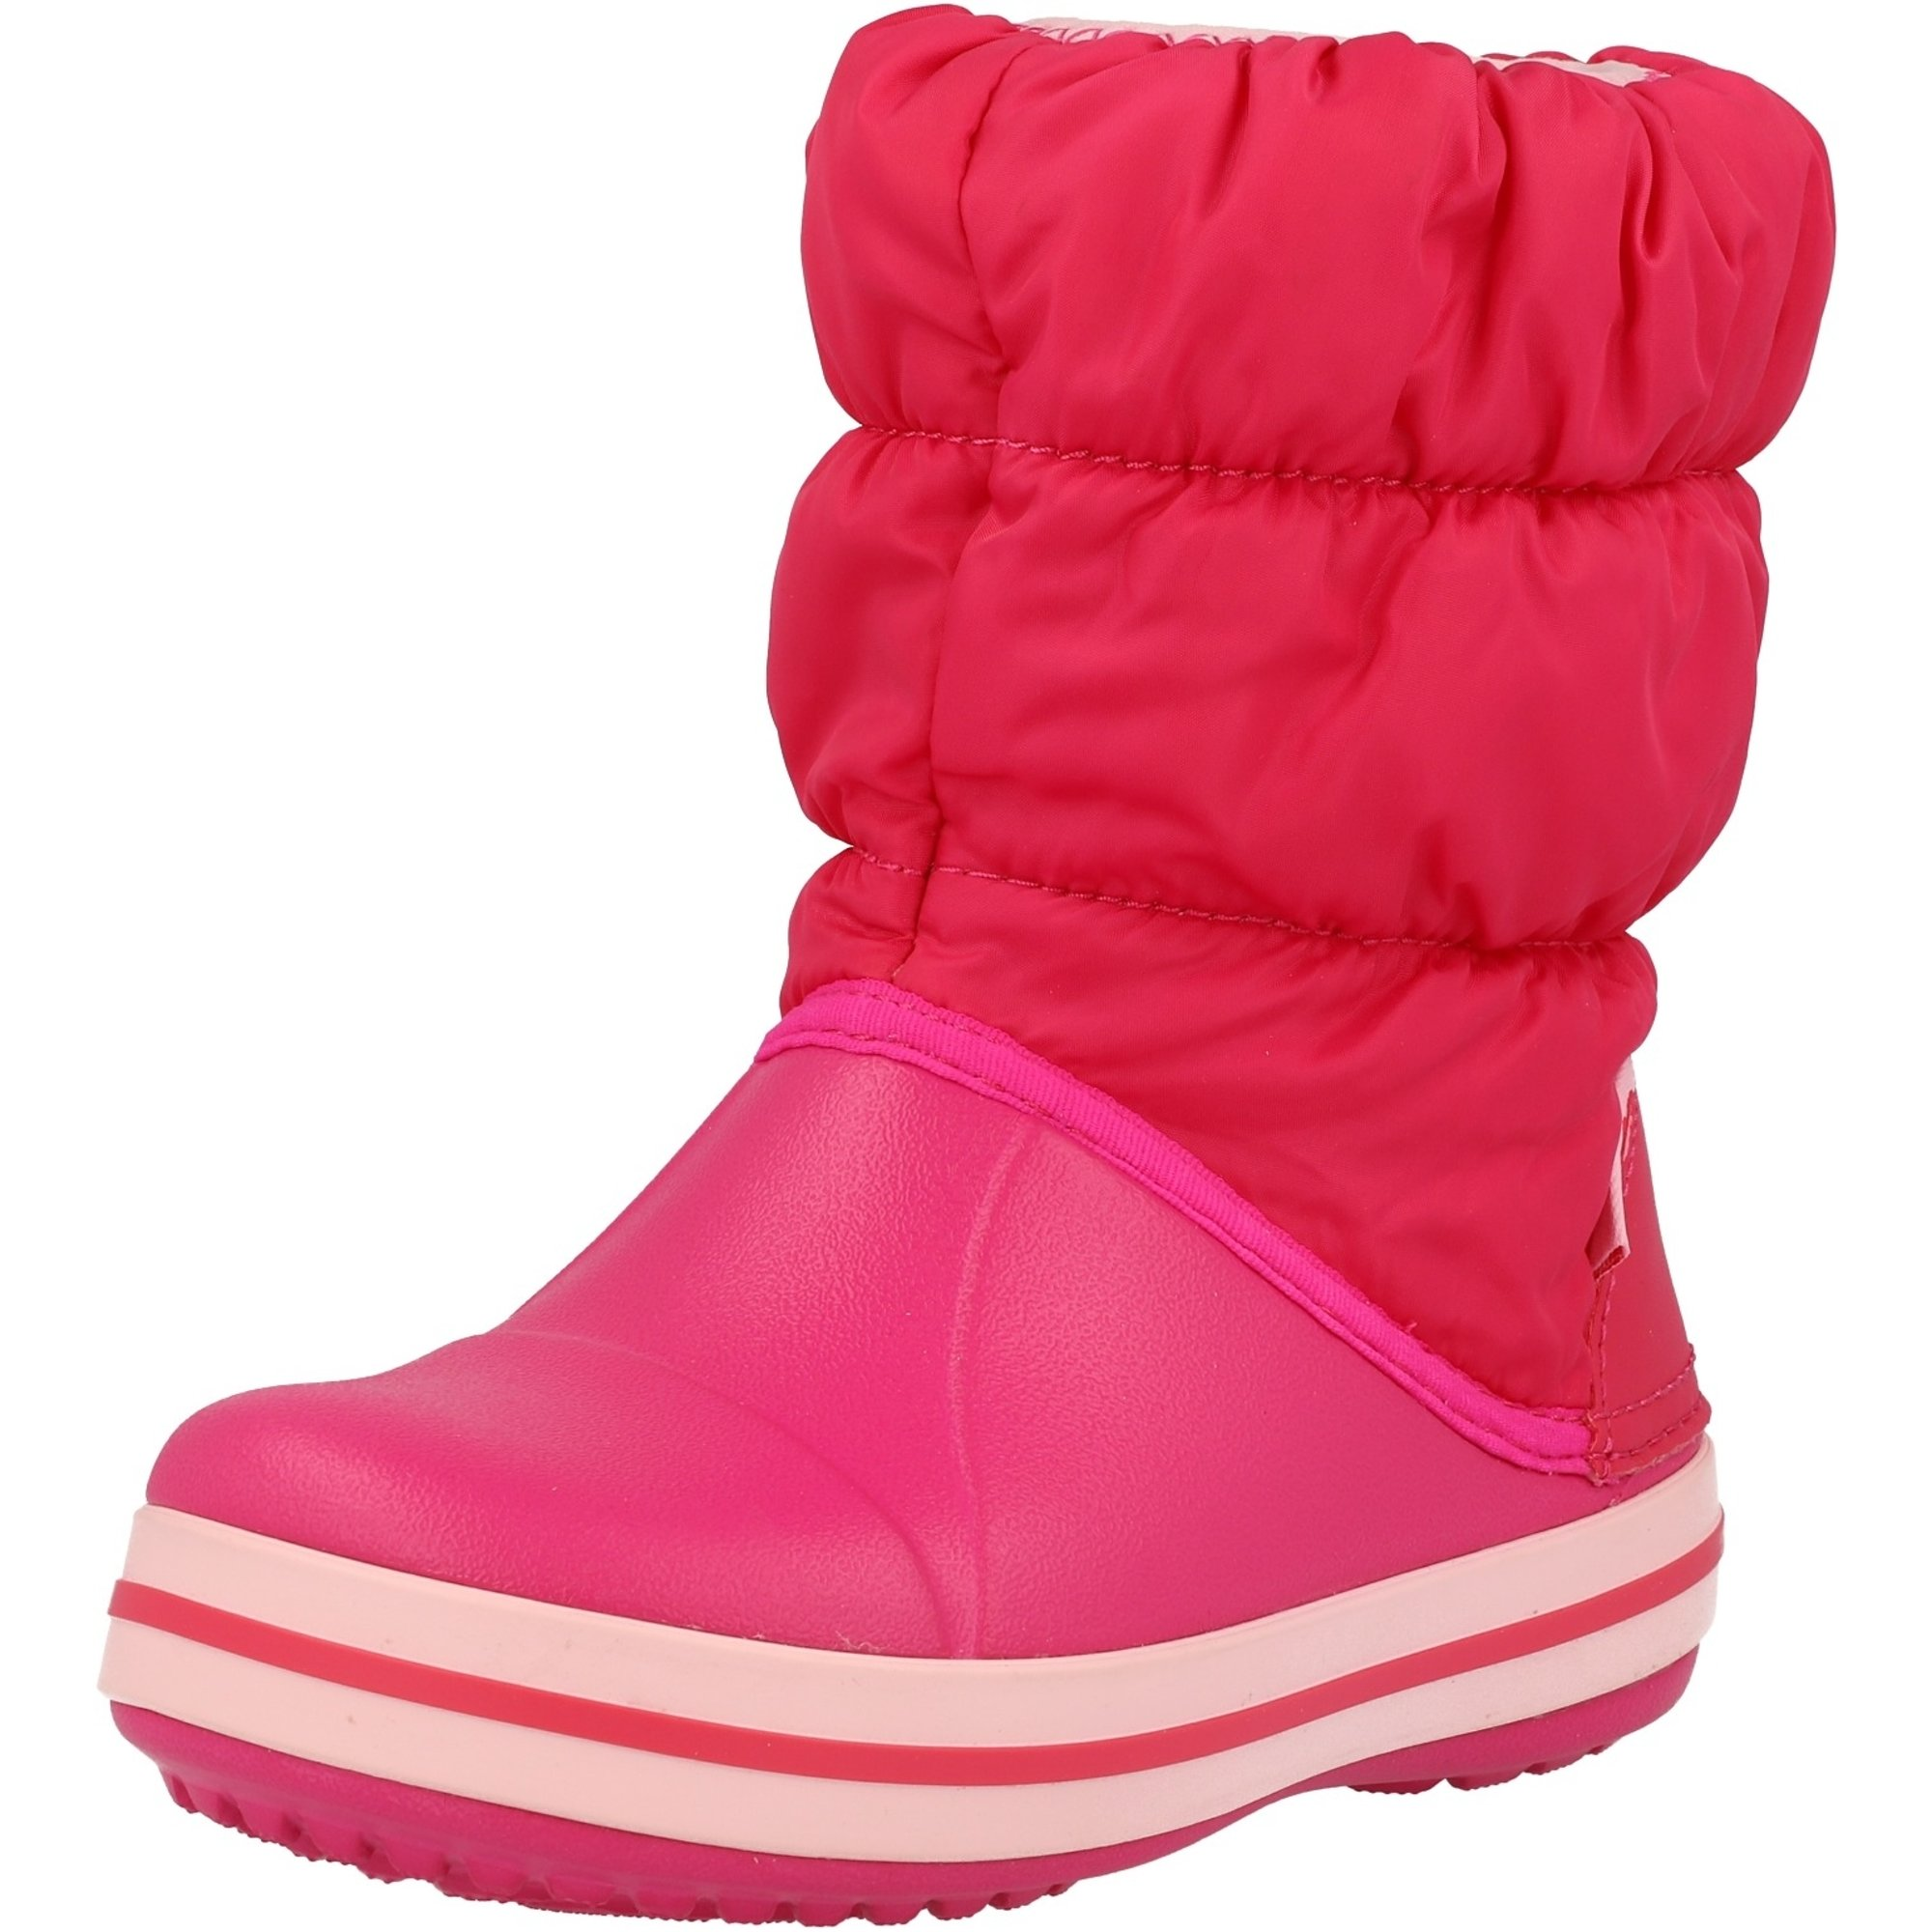 Crocs Kids Winter Puff Boot Candy Pink Nylon